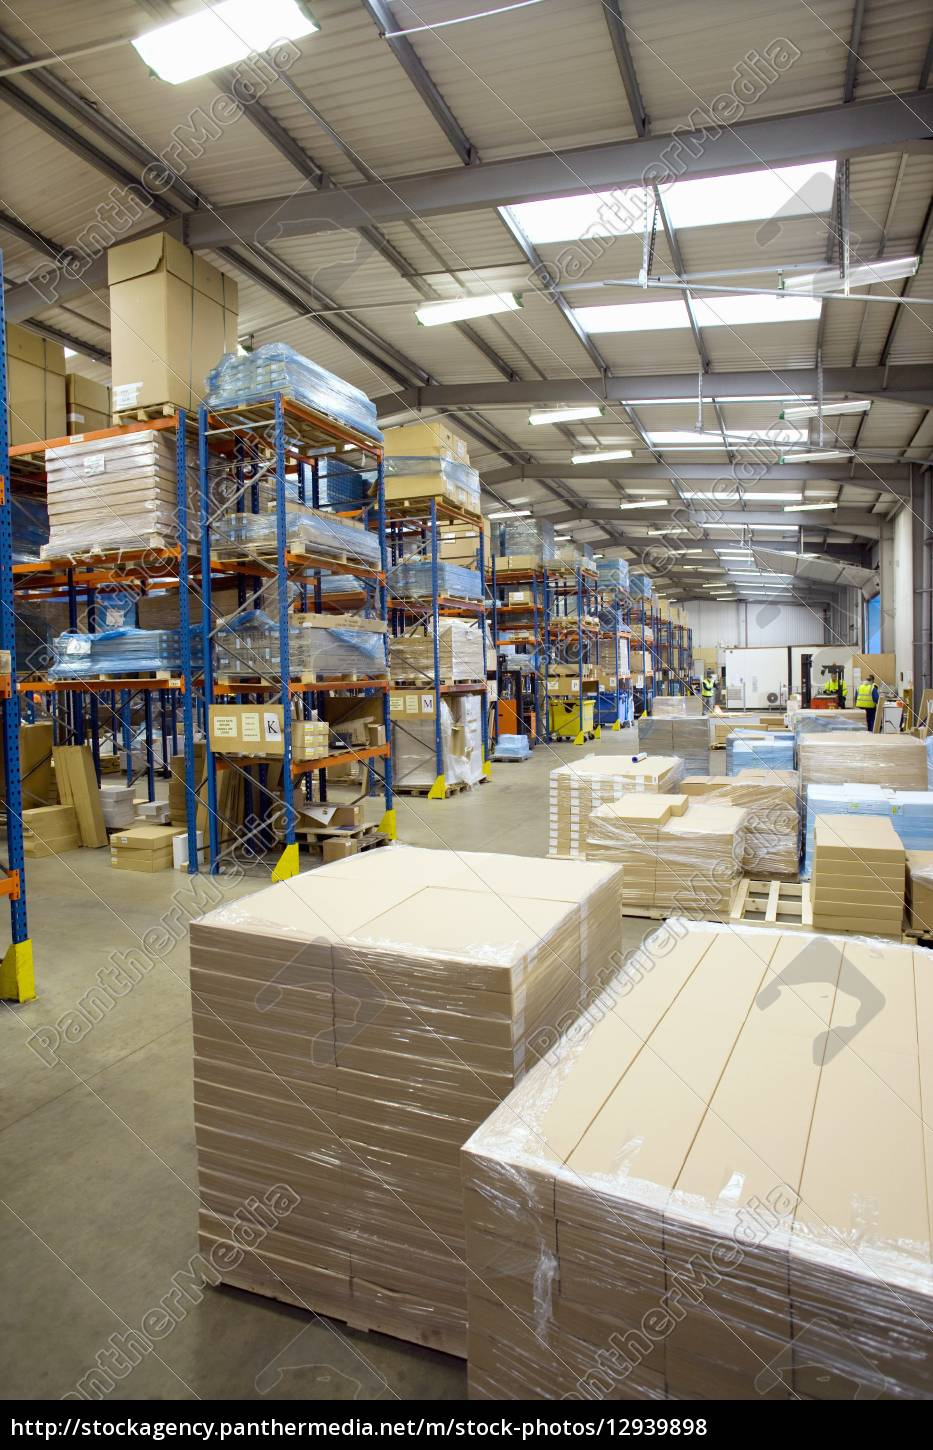 cardboard, boxes, and, pallets, in, warehouse - 12939898